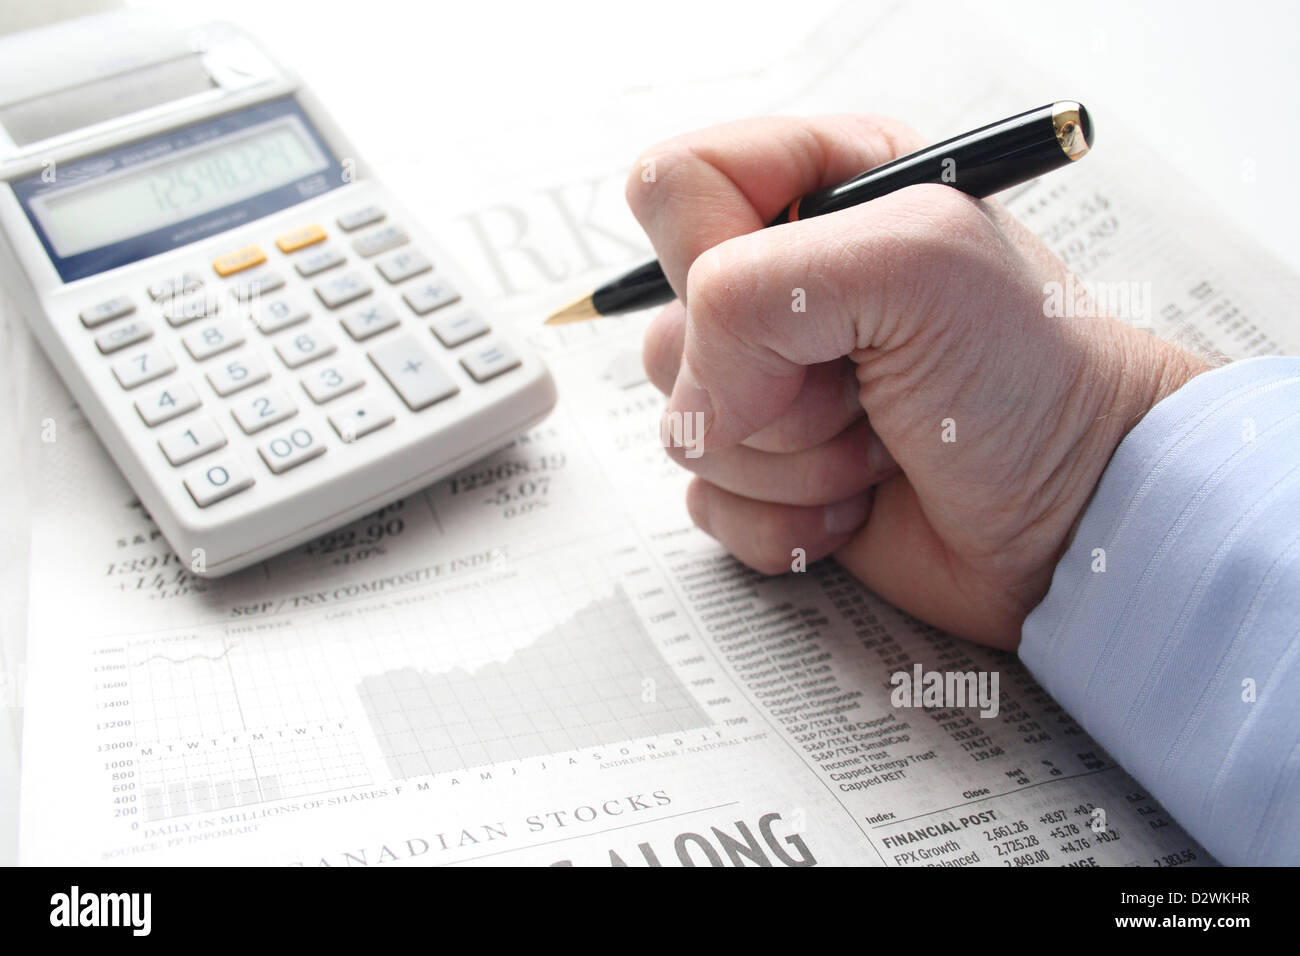 frustration and anger over financial loss - Stock Image